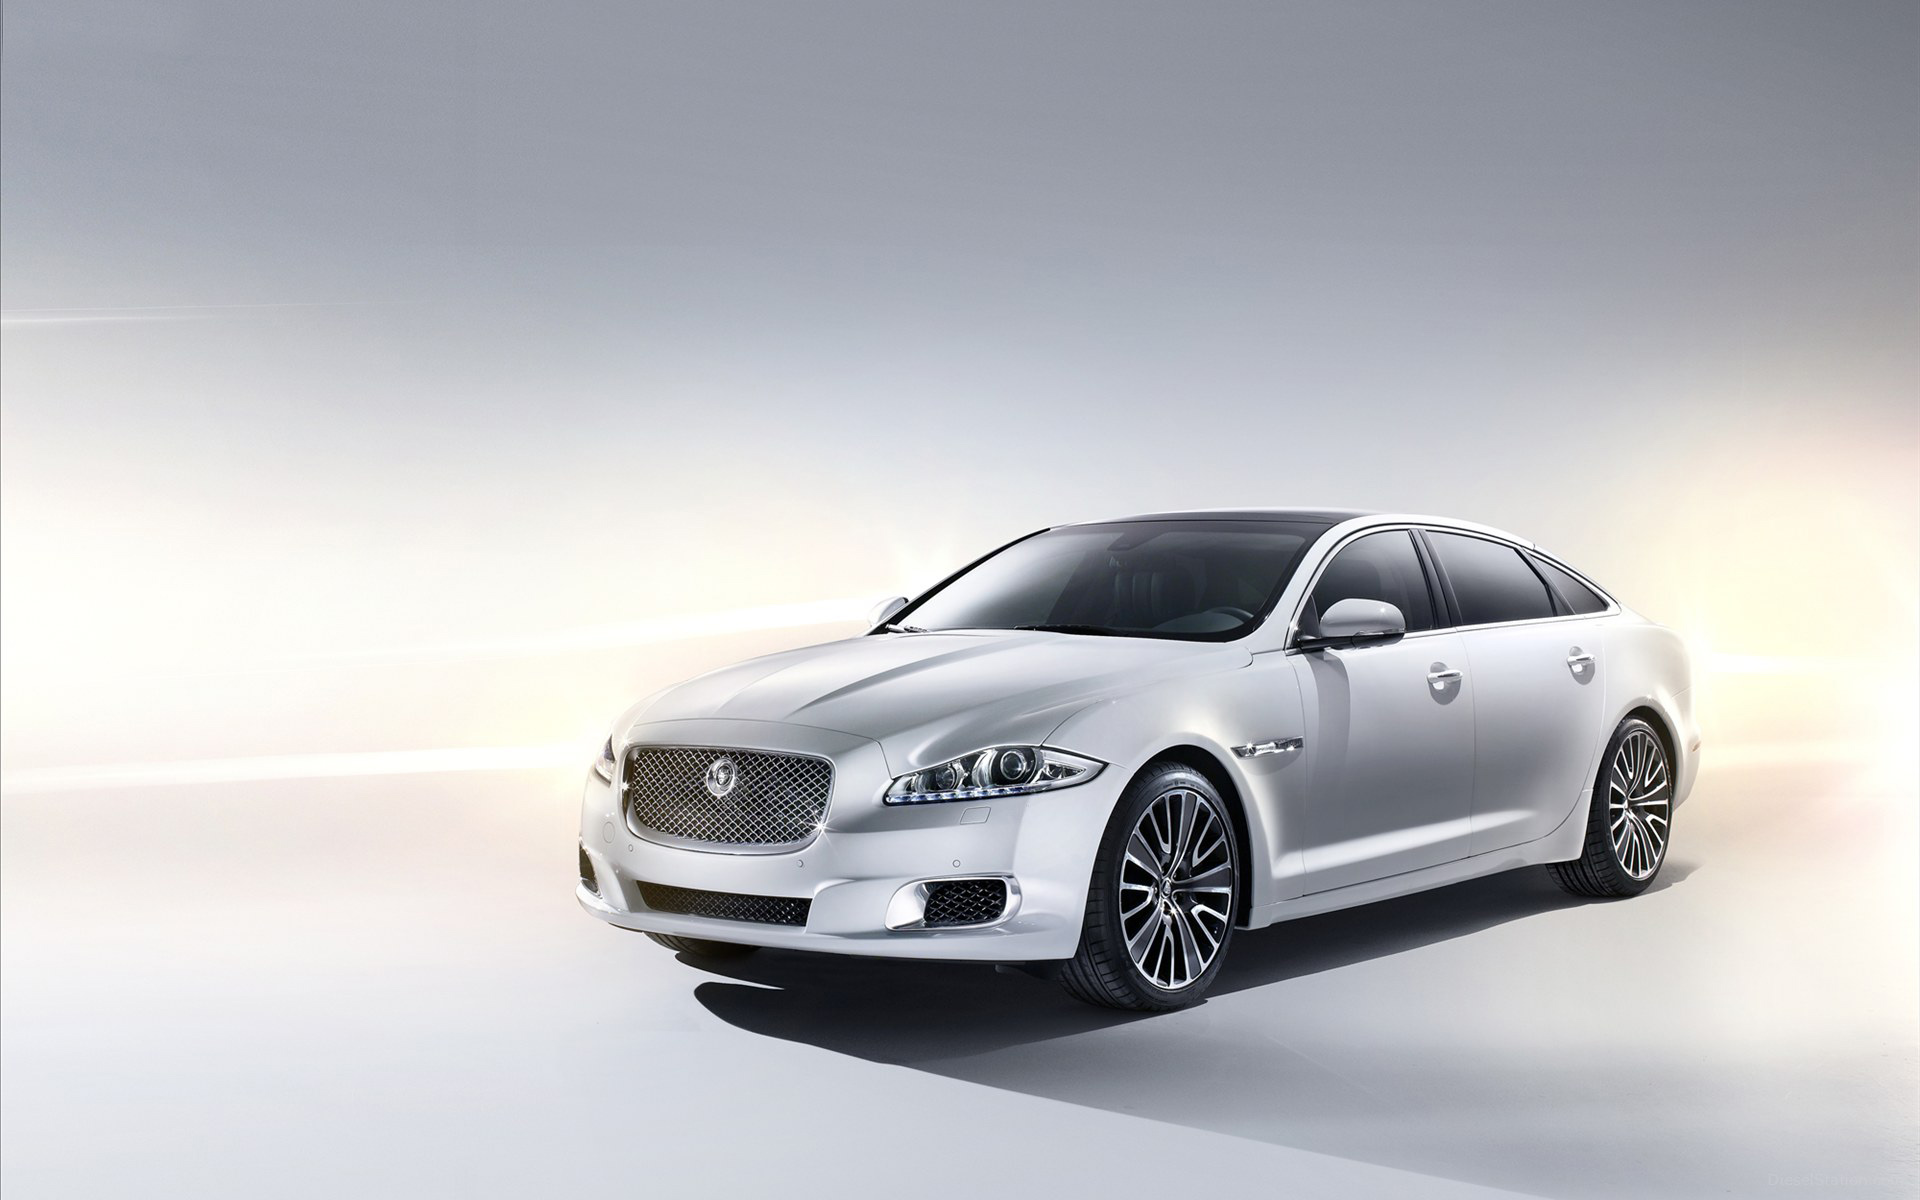 2013 Jaguar XJ Ultimate Wallpaper